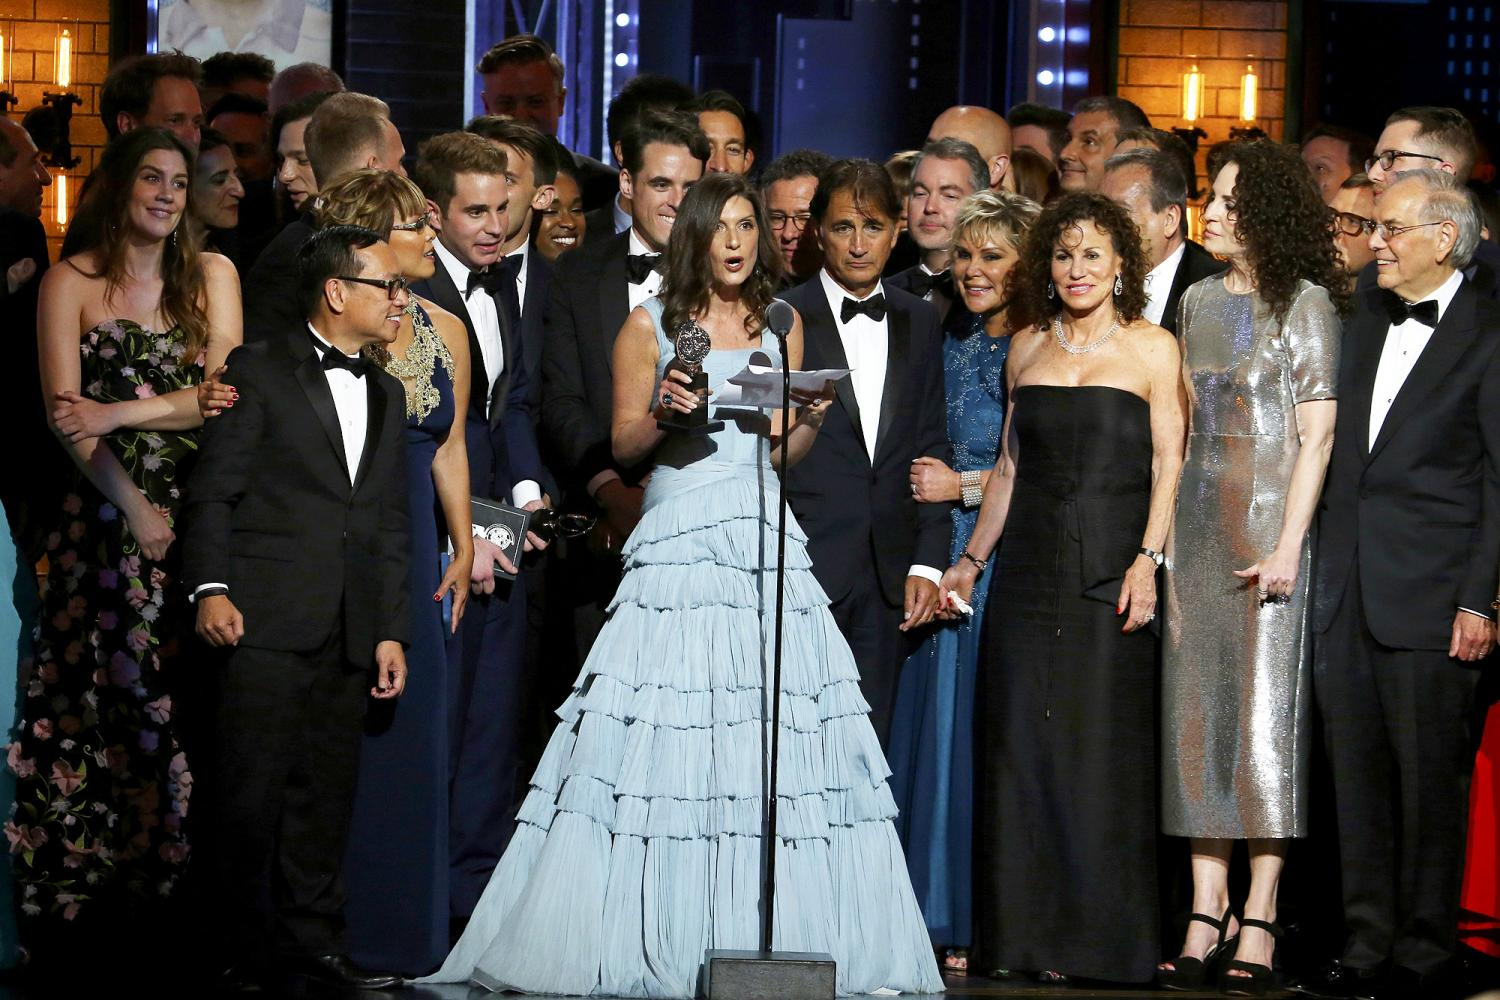 The cast and crew of Dear Evan Hansen after winning best musical at the 71st annual Tony Awards